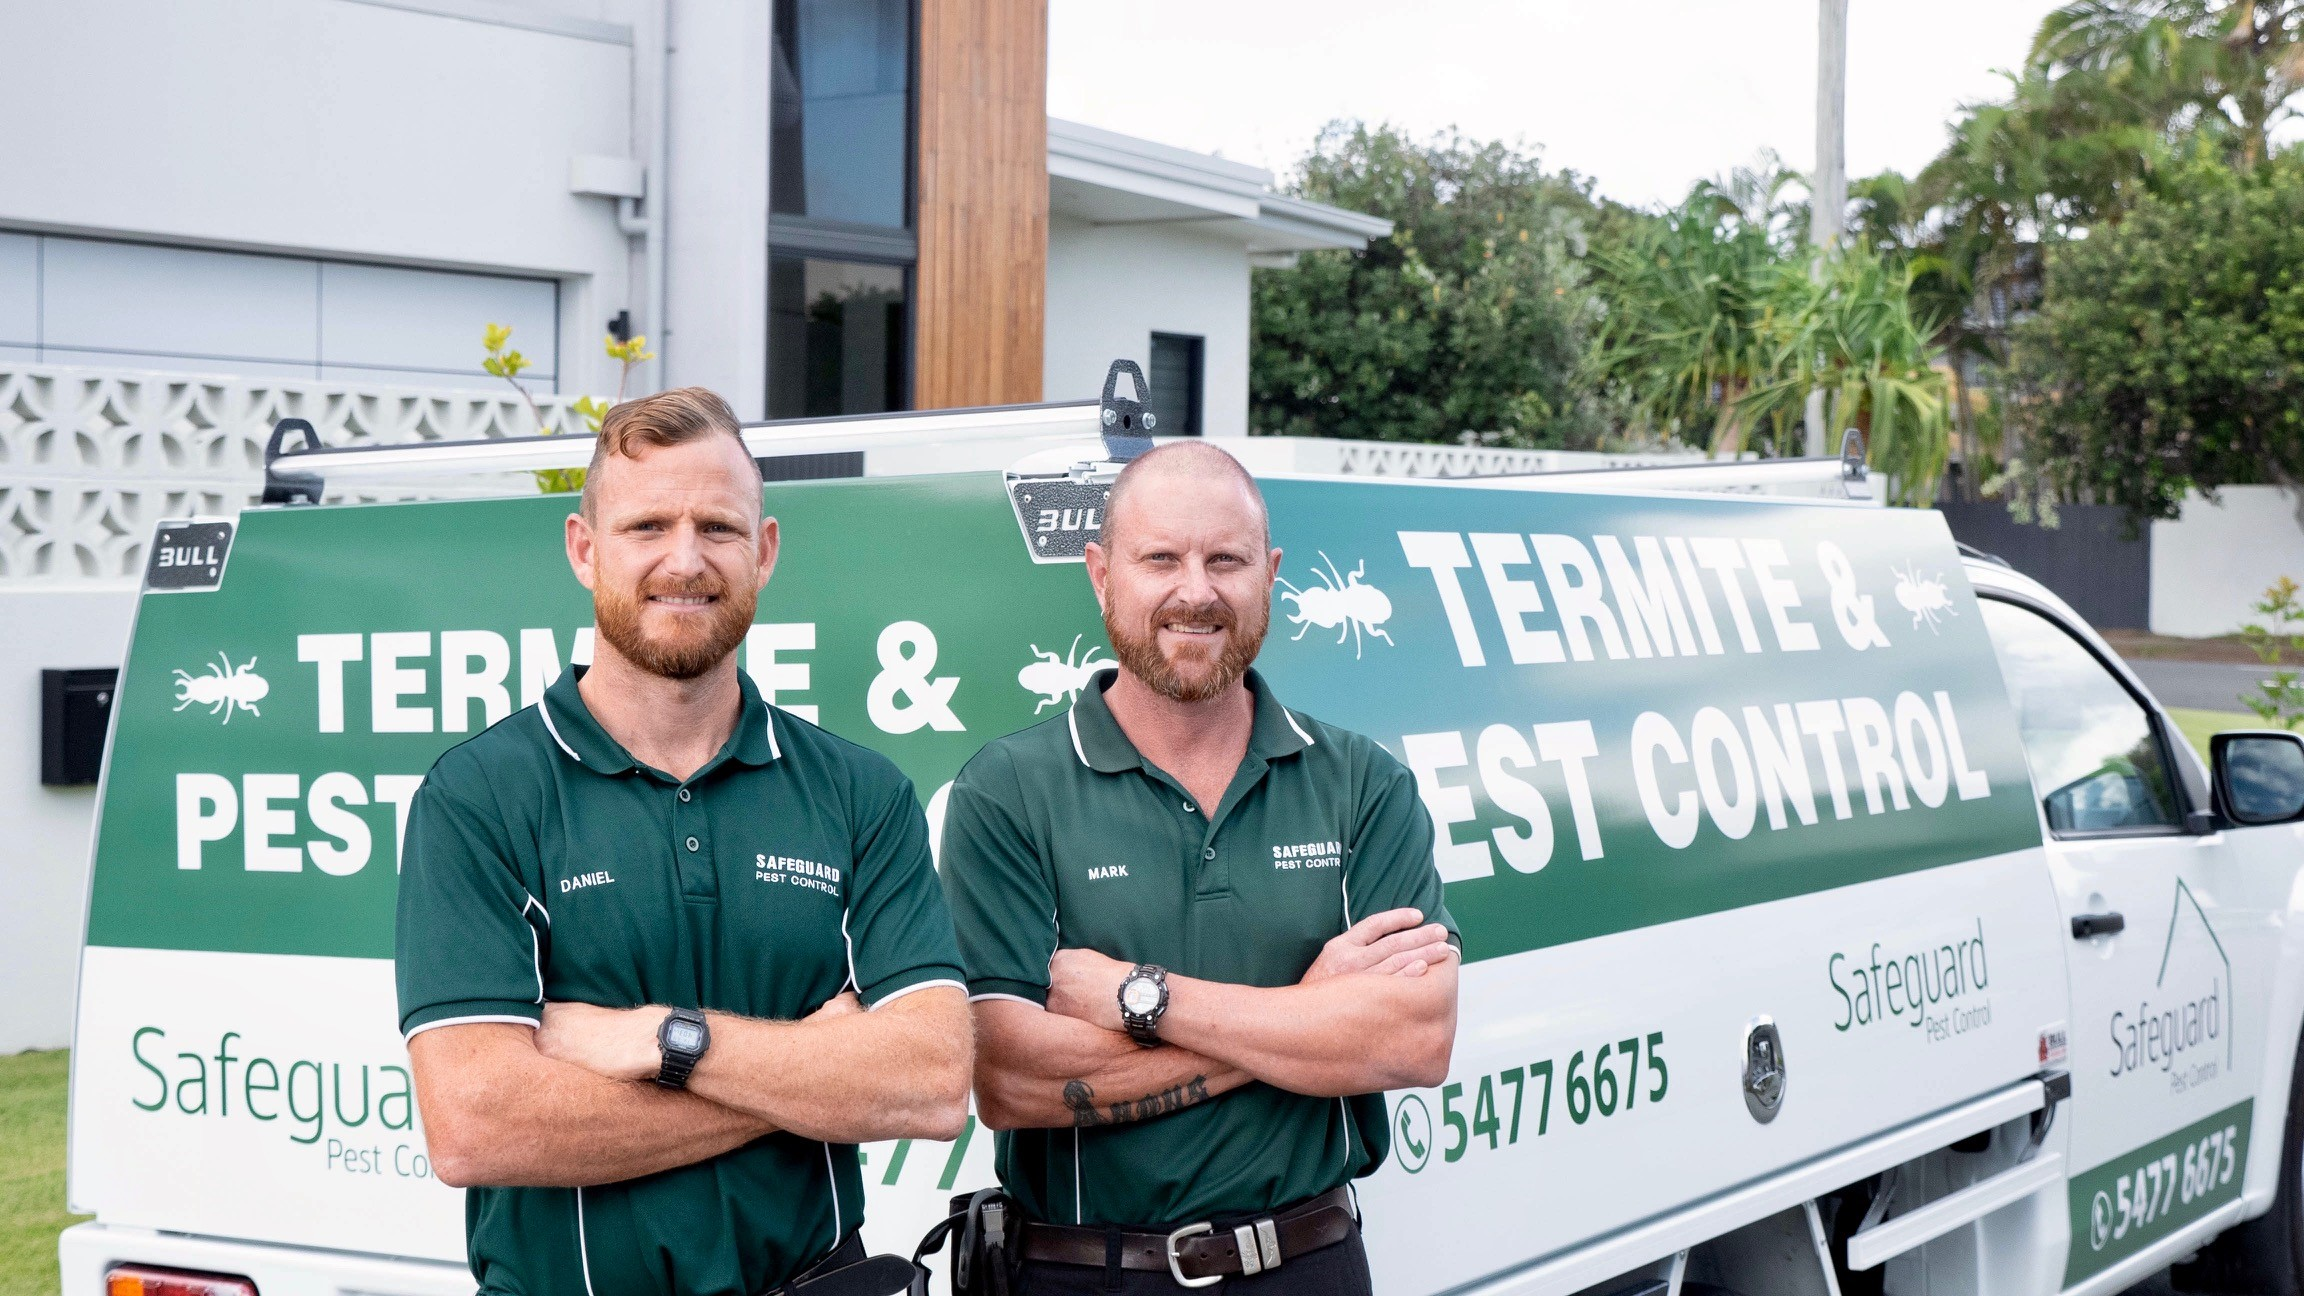 How Much Does Termite Treatment Cost On Average Safeguard Pest Control